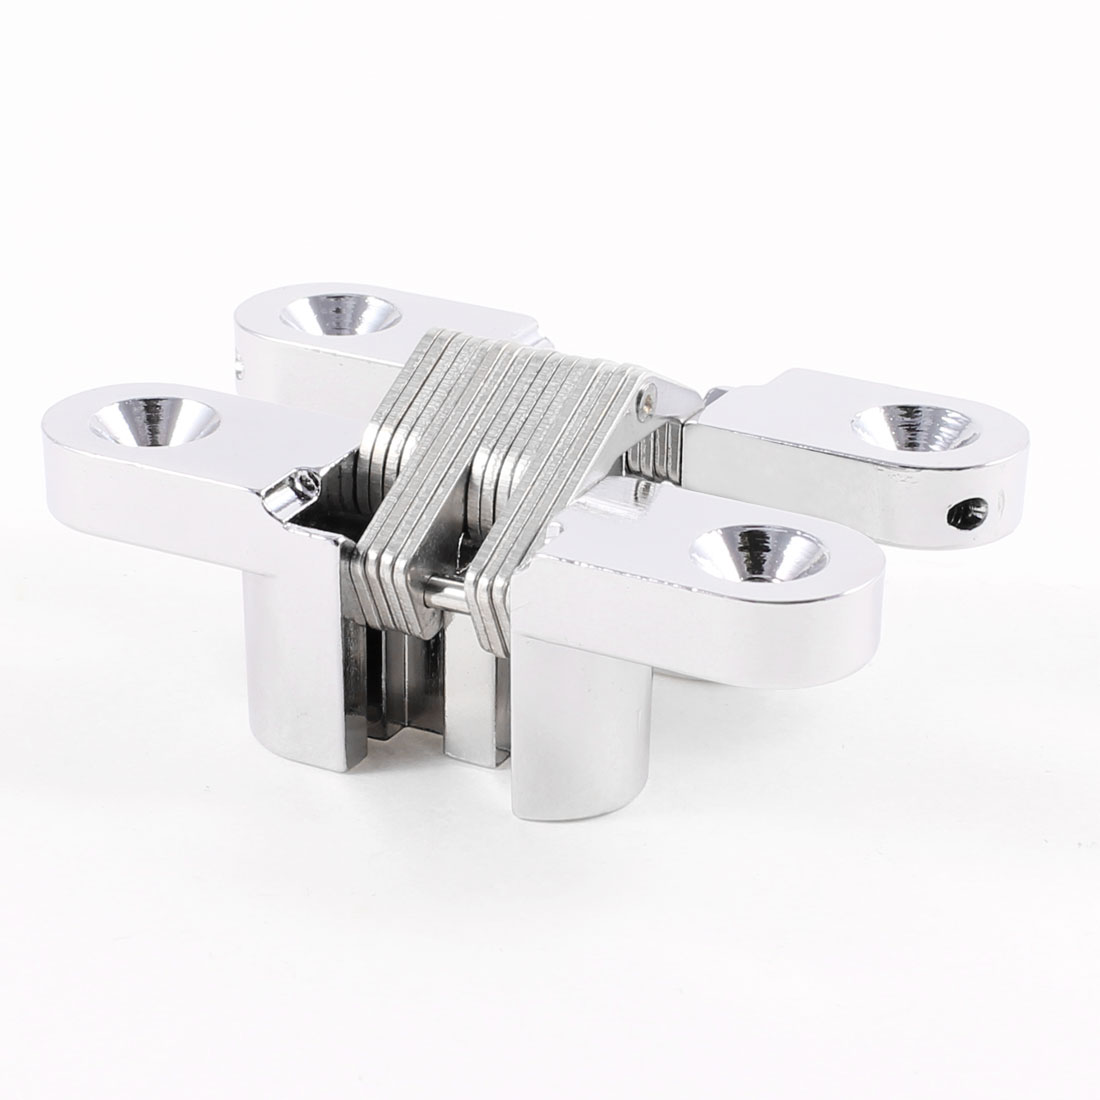 70mm Length Silver Tone Metal Cross Hinge for Folded Door Cabinet